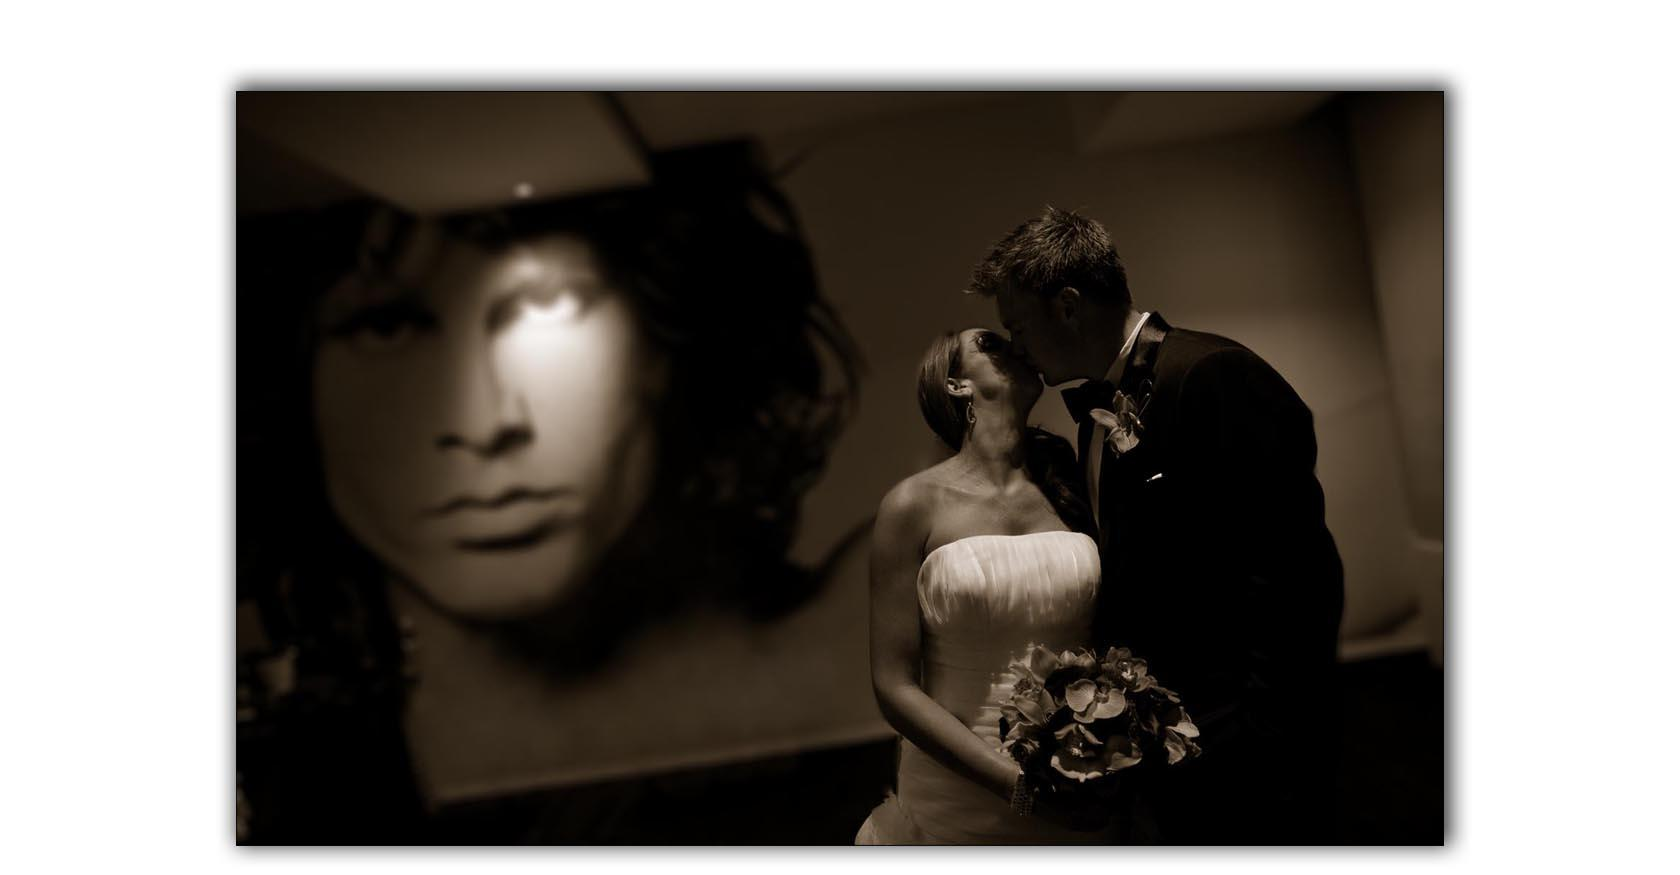 Hard Rock San Diego bride and groom wedding kiss, under Jim Morrison's gaze